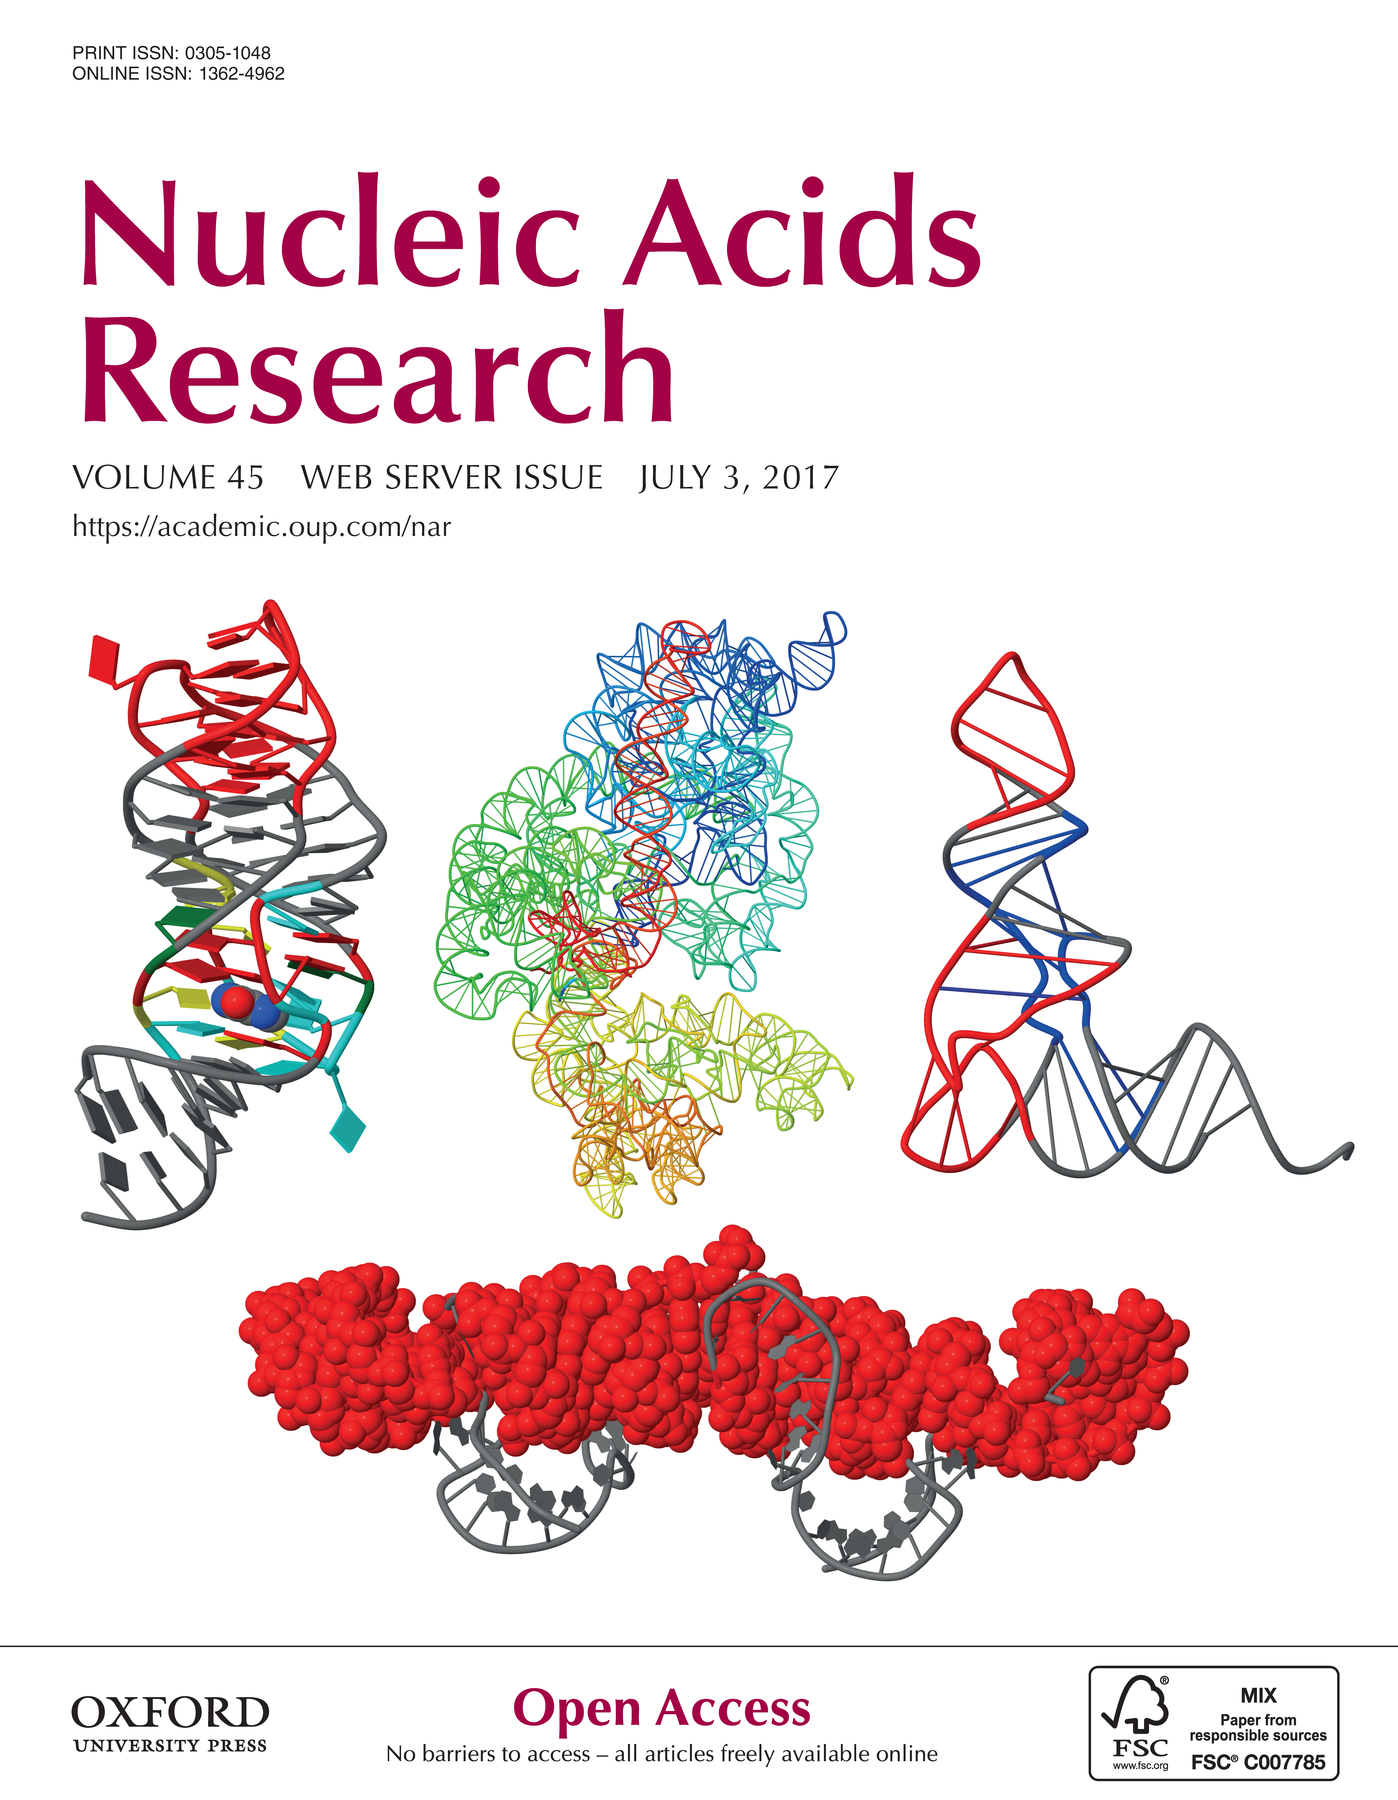 Cover image featuring the DSSR-Jmol paper